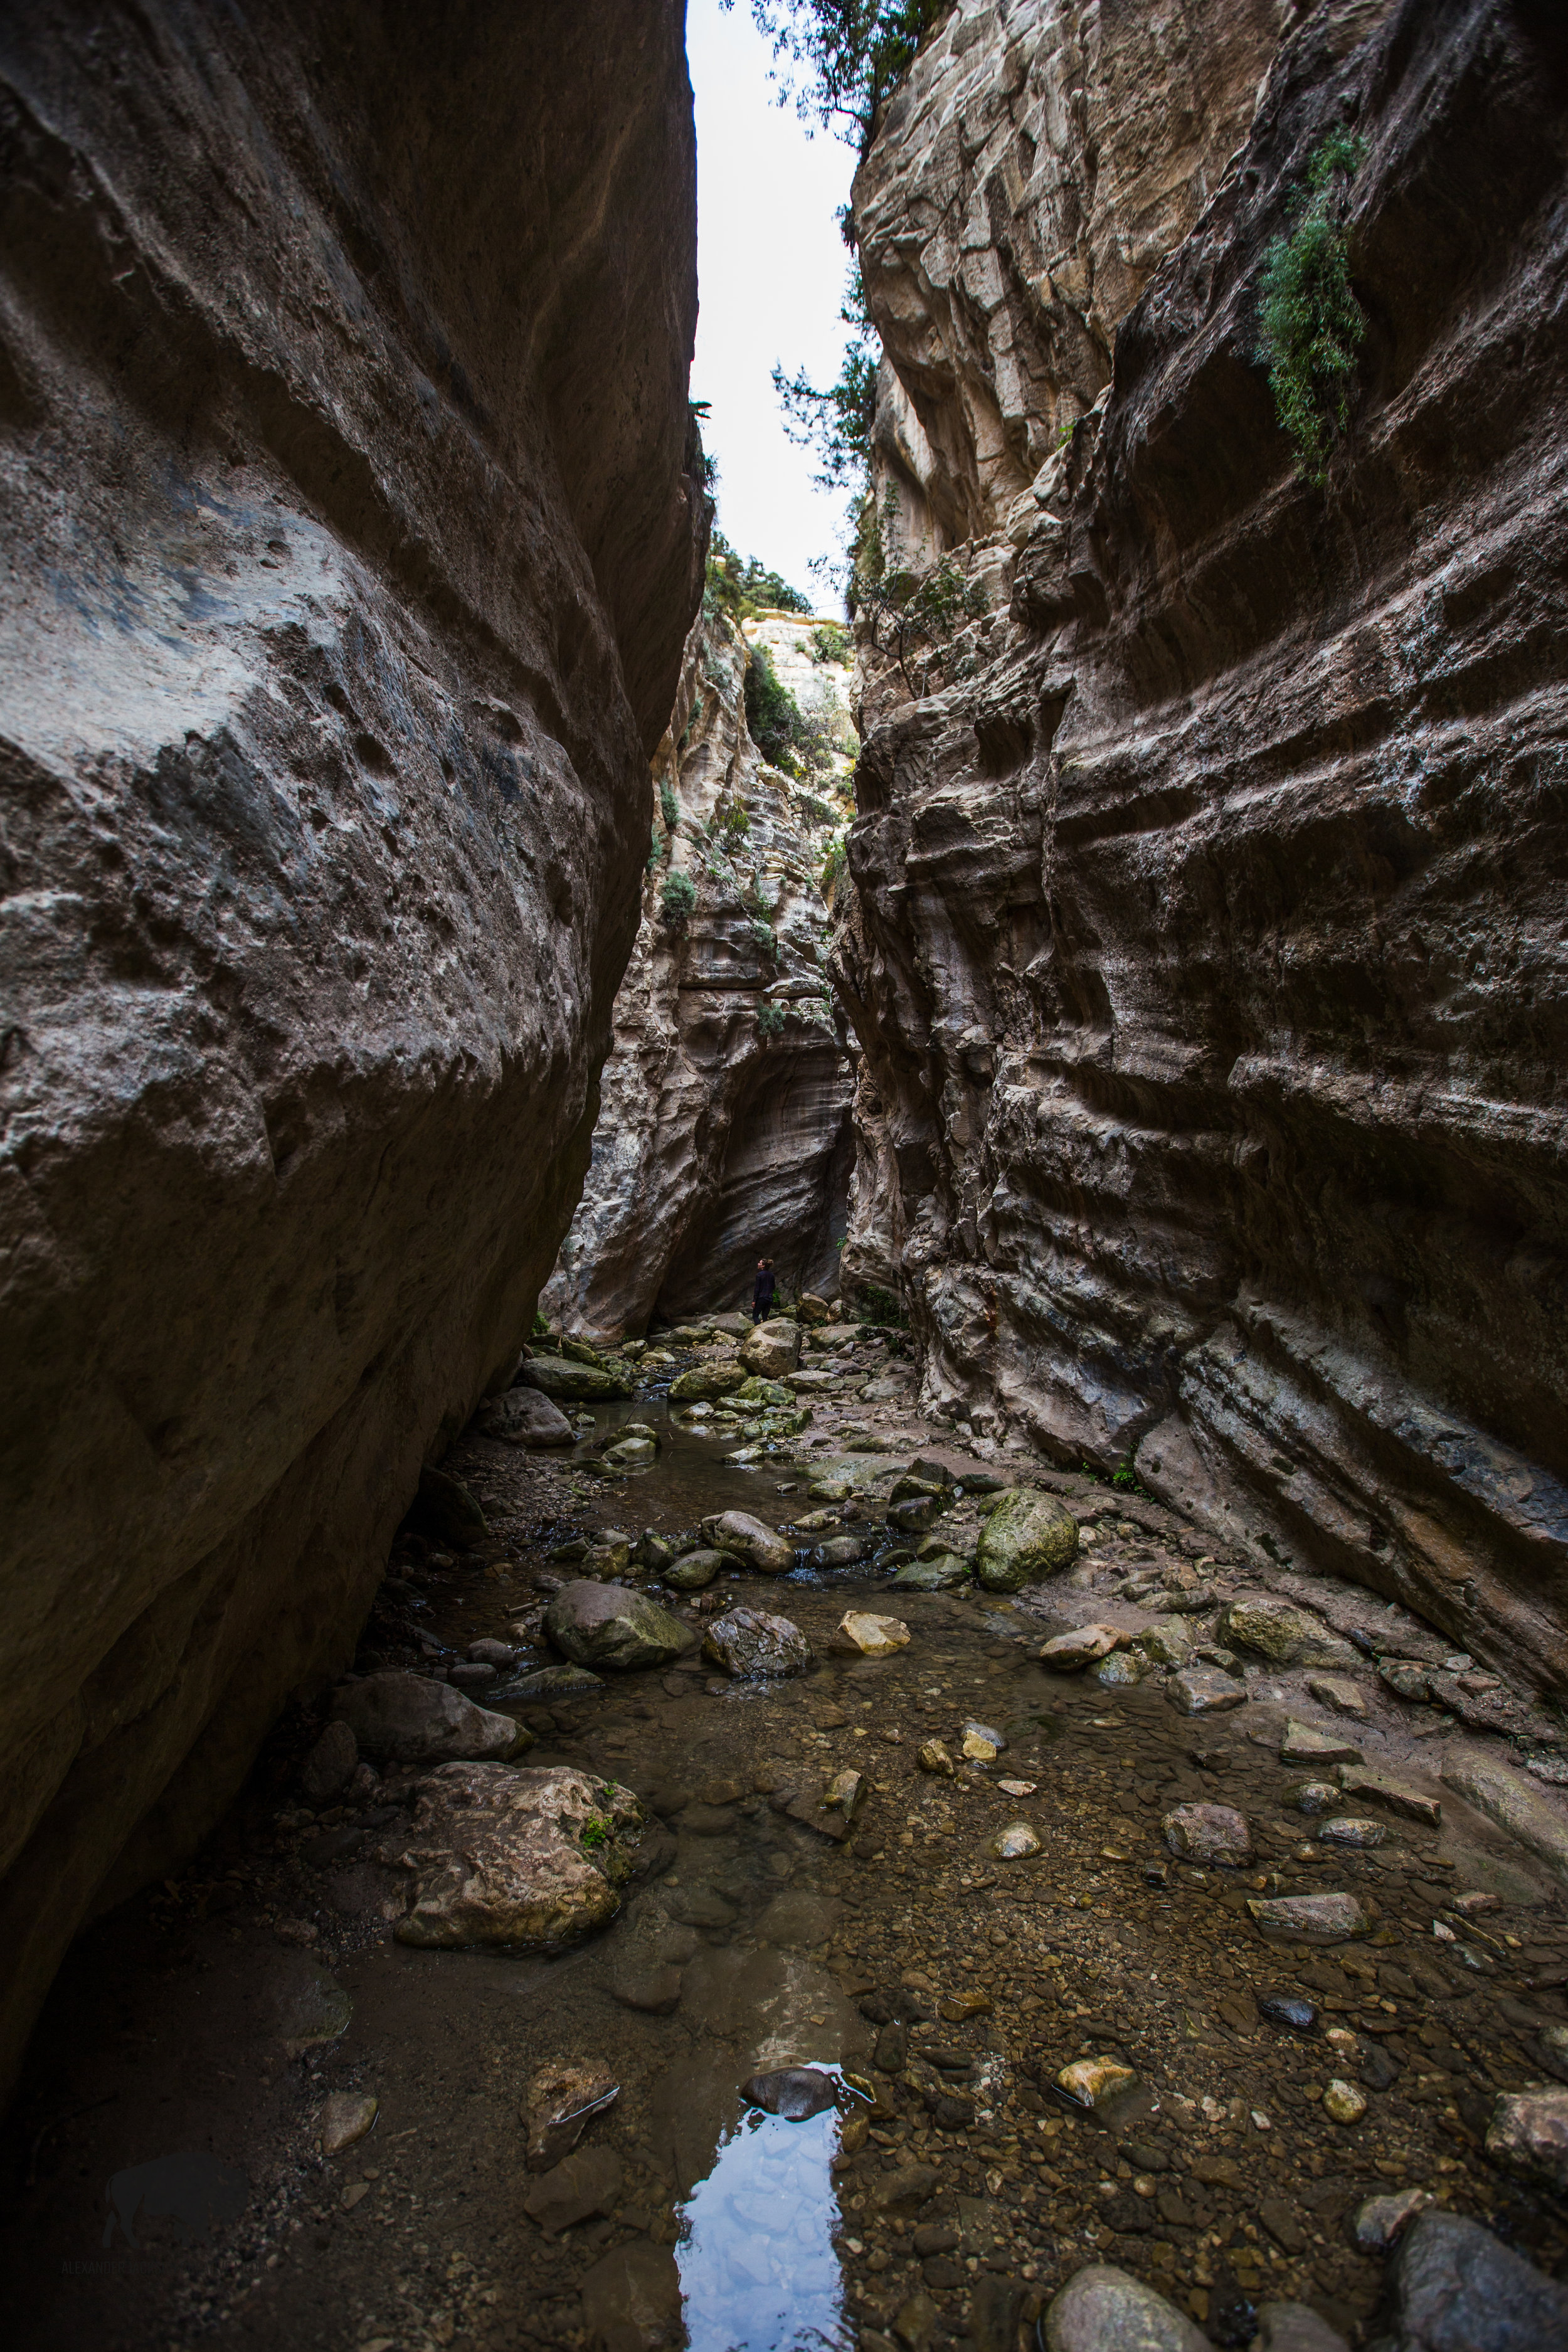 Exploring the depths of this river gorge was pretty cool.